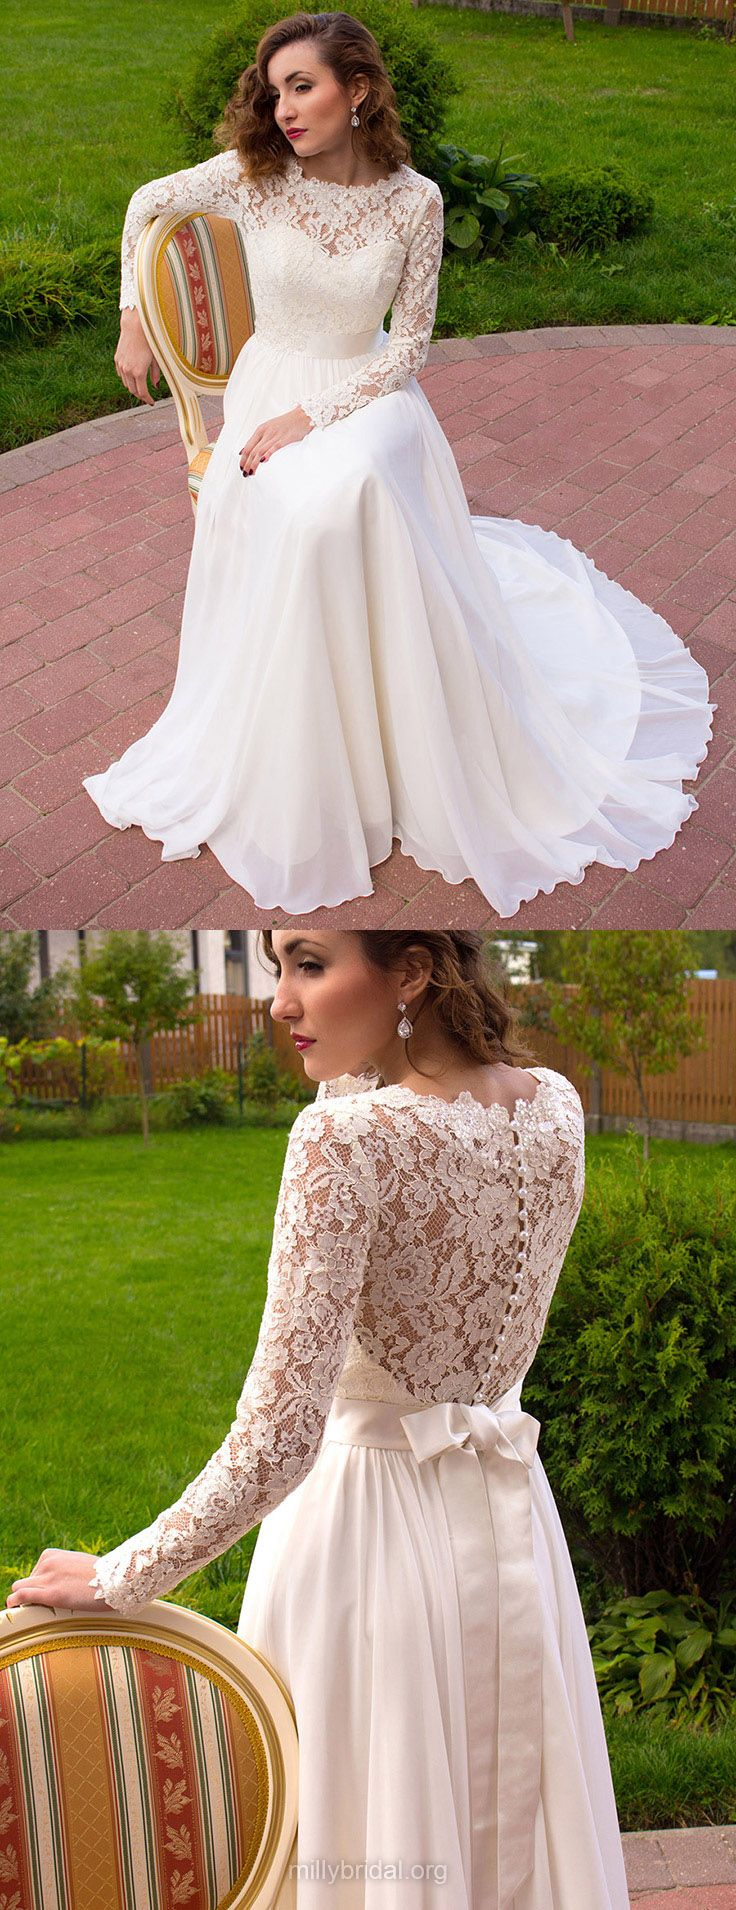 Lace wedding dresses aline bridal gowns long sleeve modest